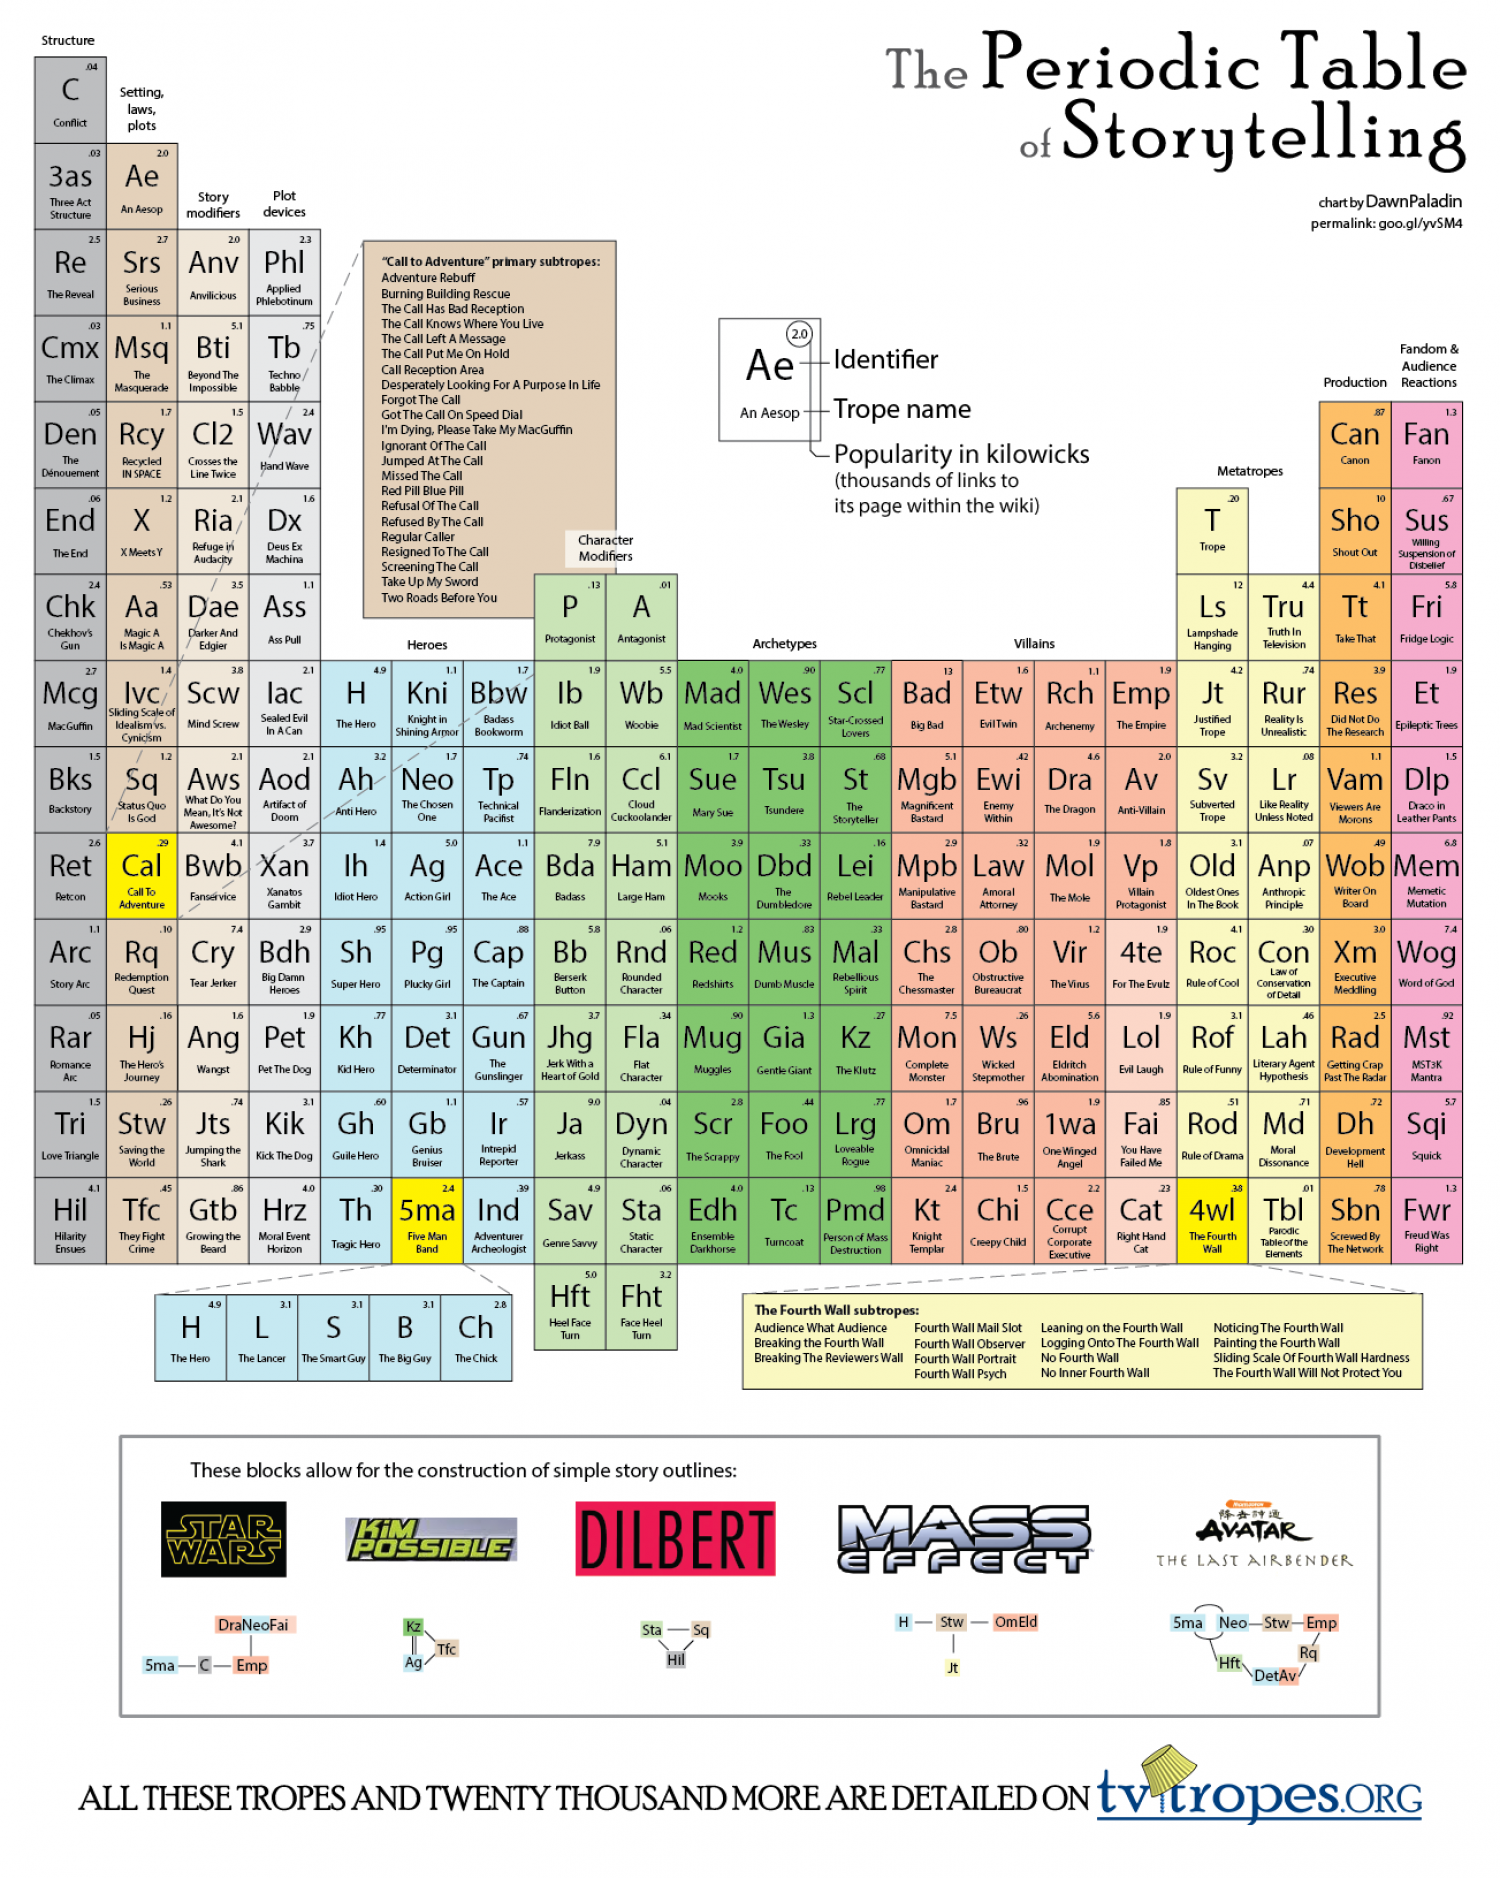 The Periodic Table of Storytelling Infographic